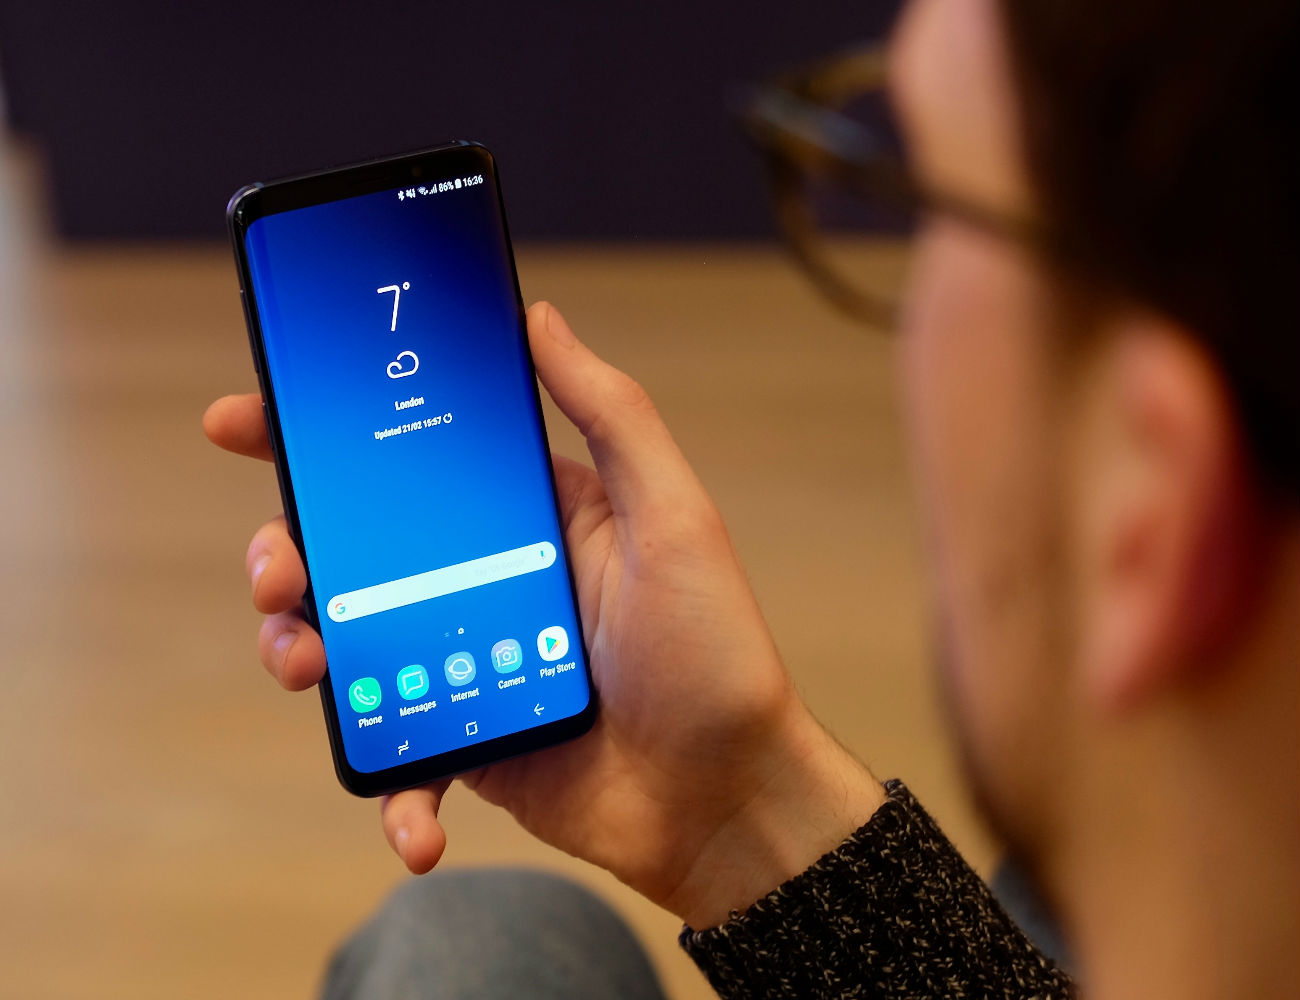 Samsung Galaxy S9 and S9 Plus Smartphone